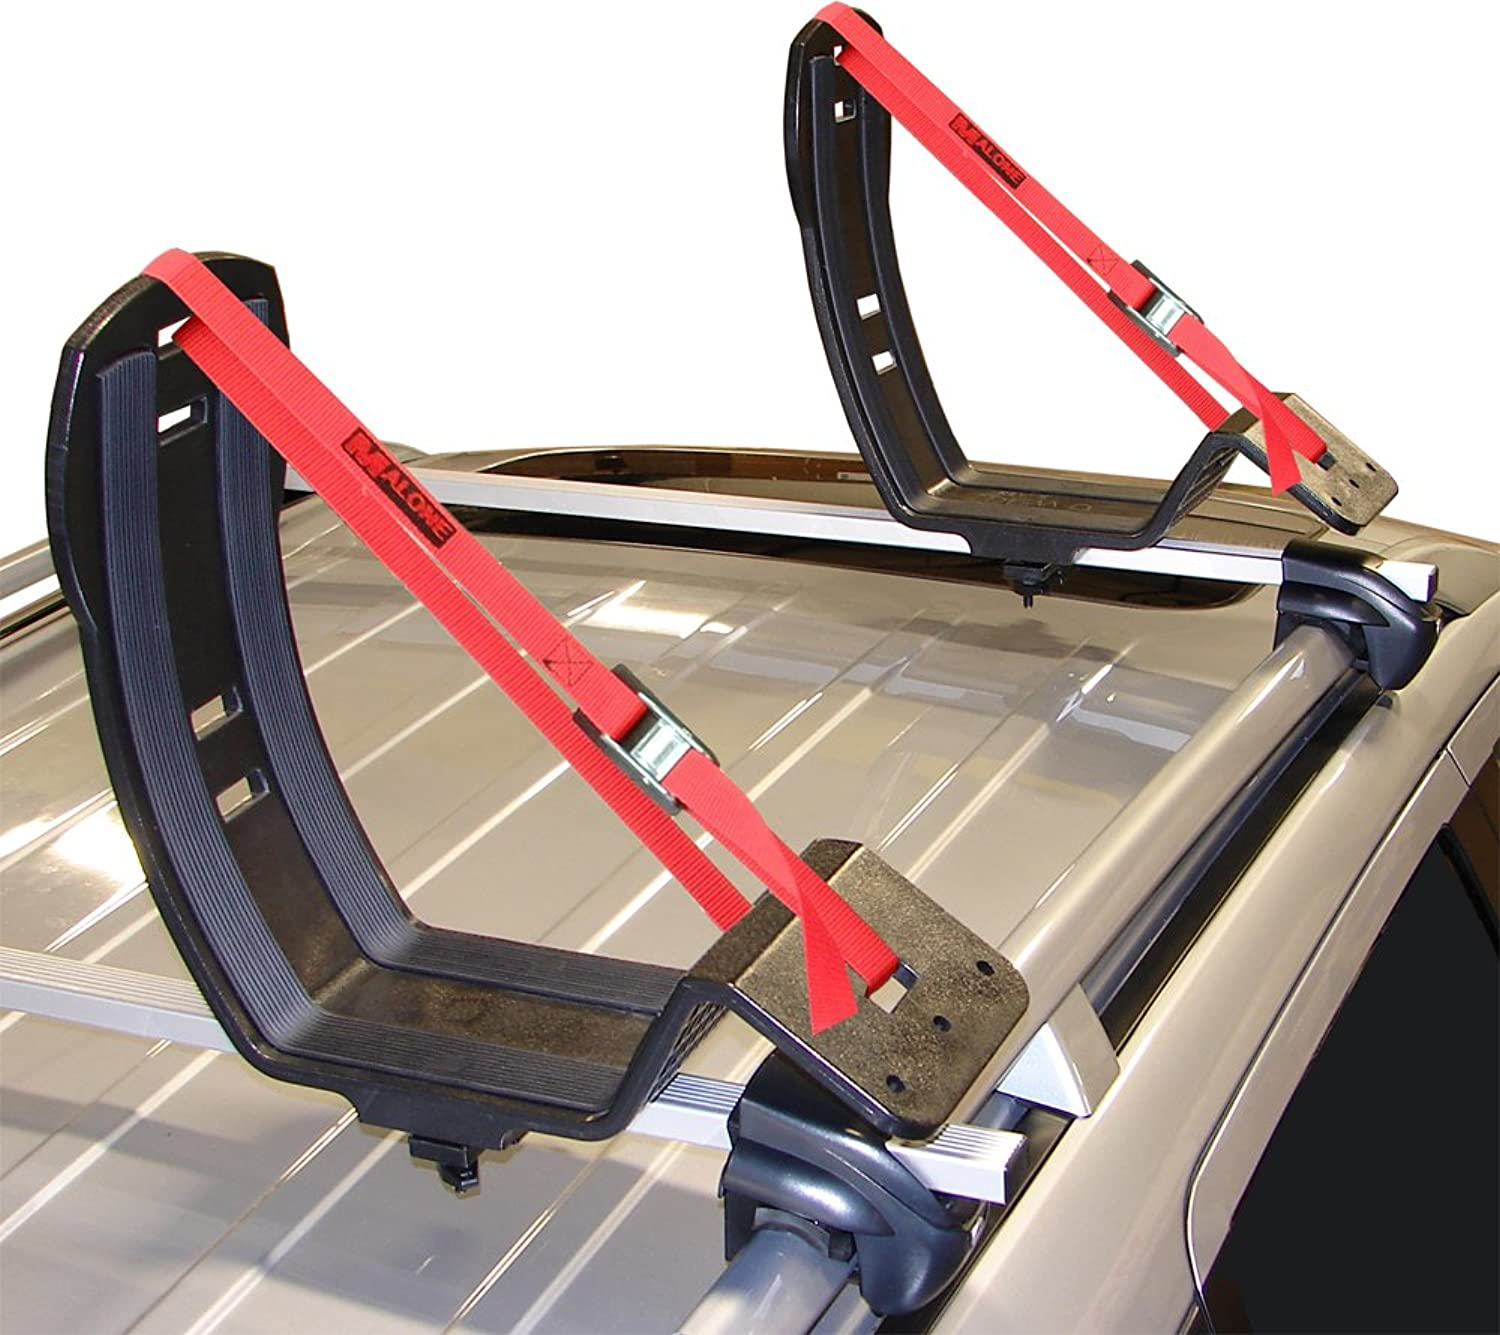 Malone AutoLoader XV JStyle Universal Car Rack Kayak Carrier